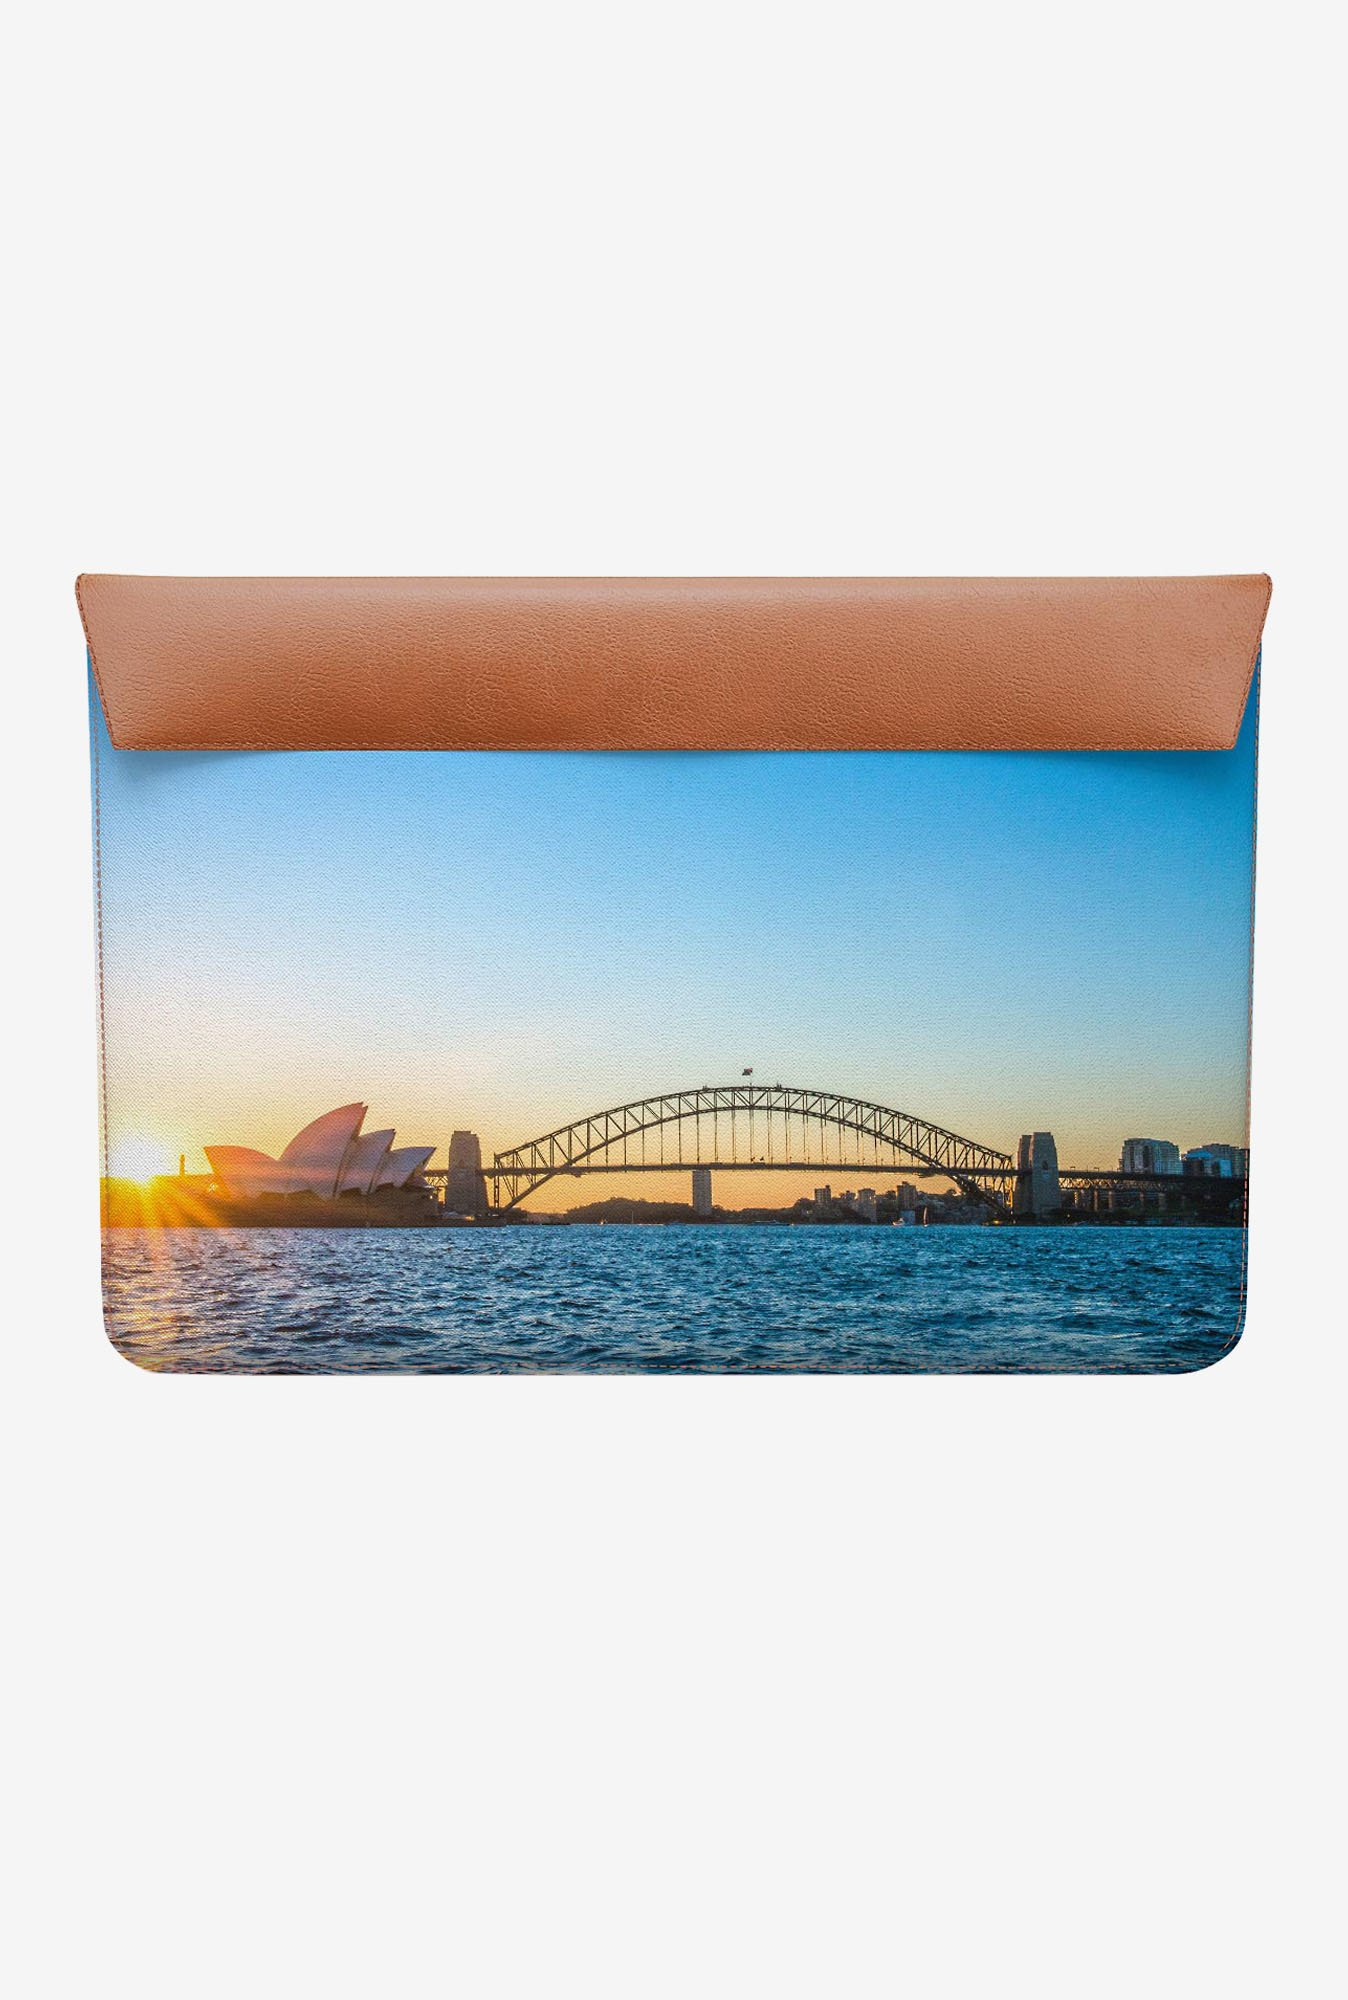 DailyObjects Opera House MacBook Pro 13 Envelope Sleeve